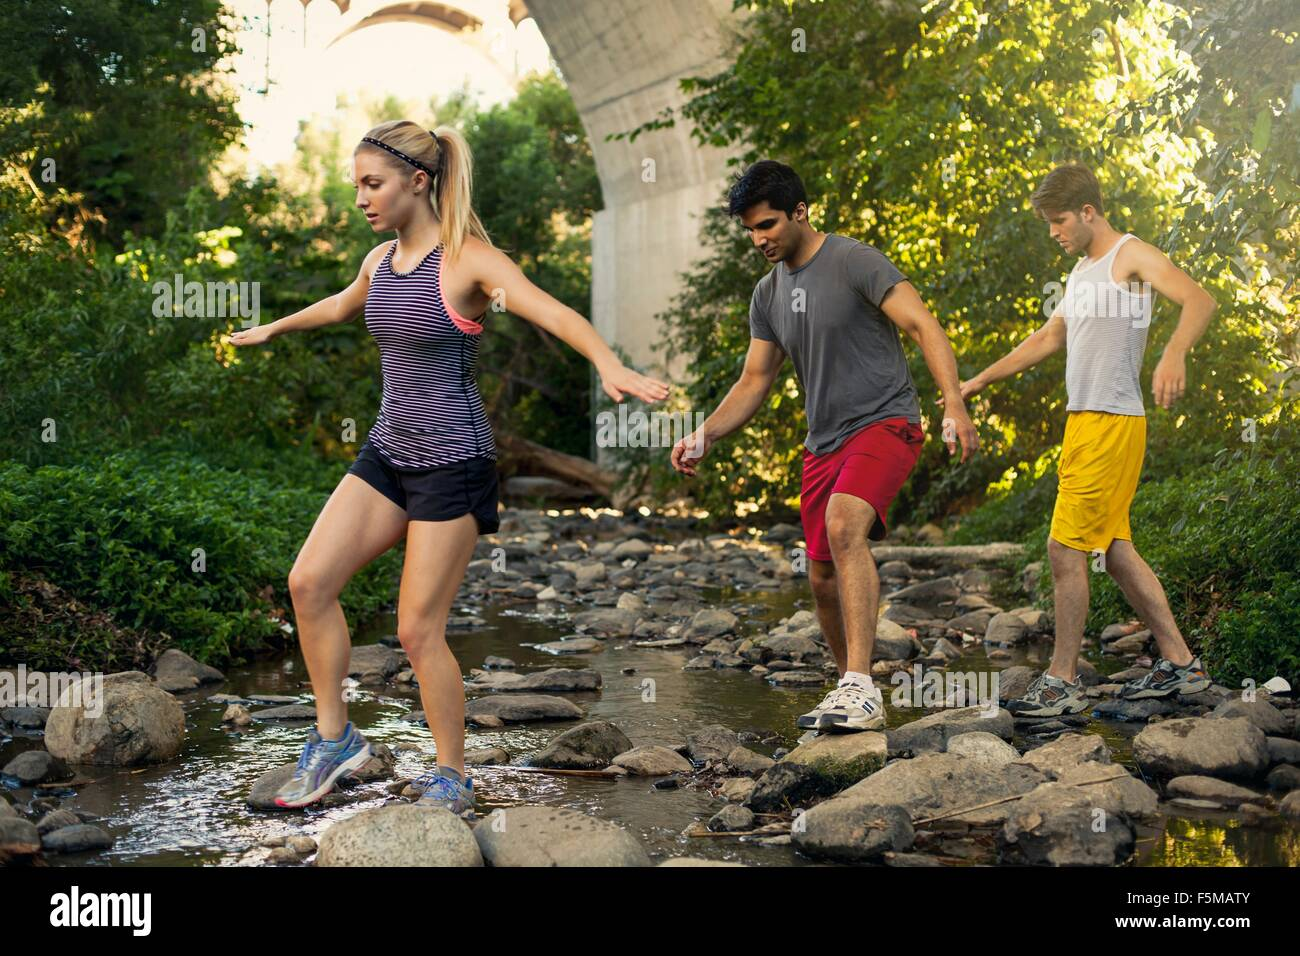 Joggers crossing stream under arch bridge, Arroyo Seco Park, Pasadena, California, USA - Stock Image